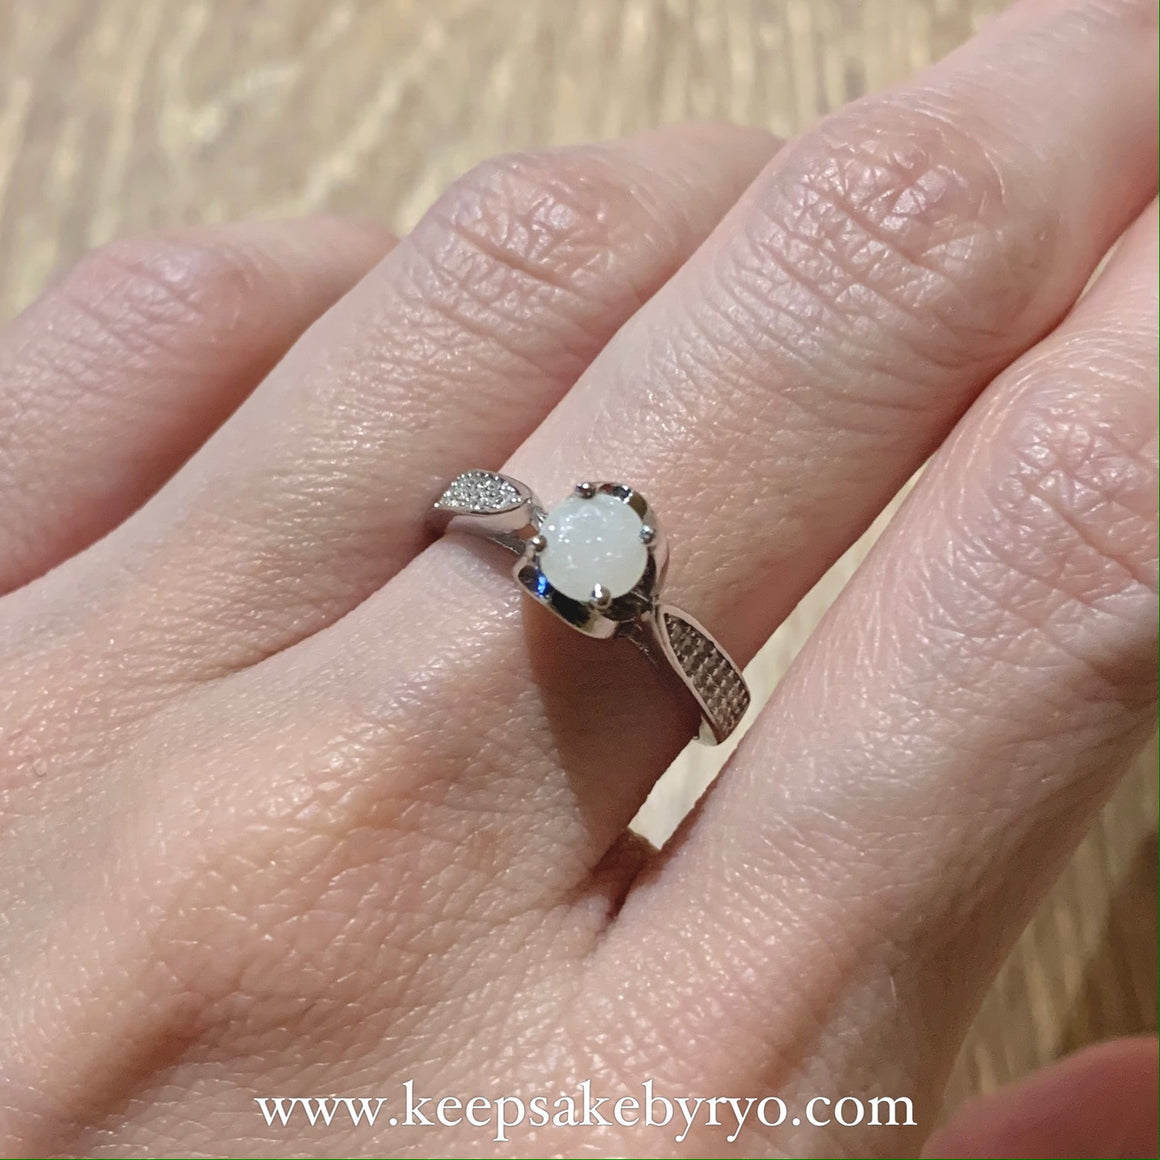 SOLITAIRE 18K: ETTA BREASTMILK RING